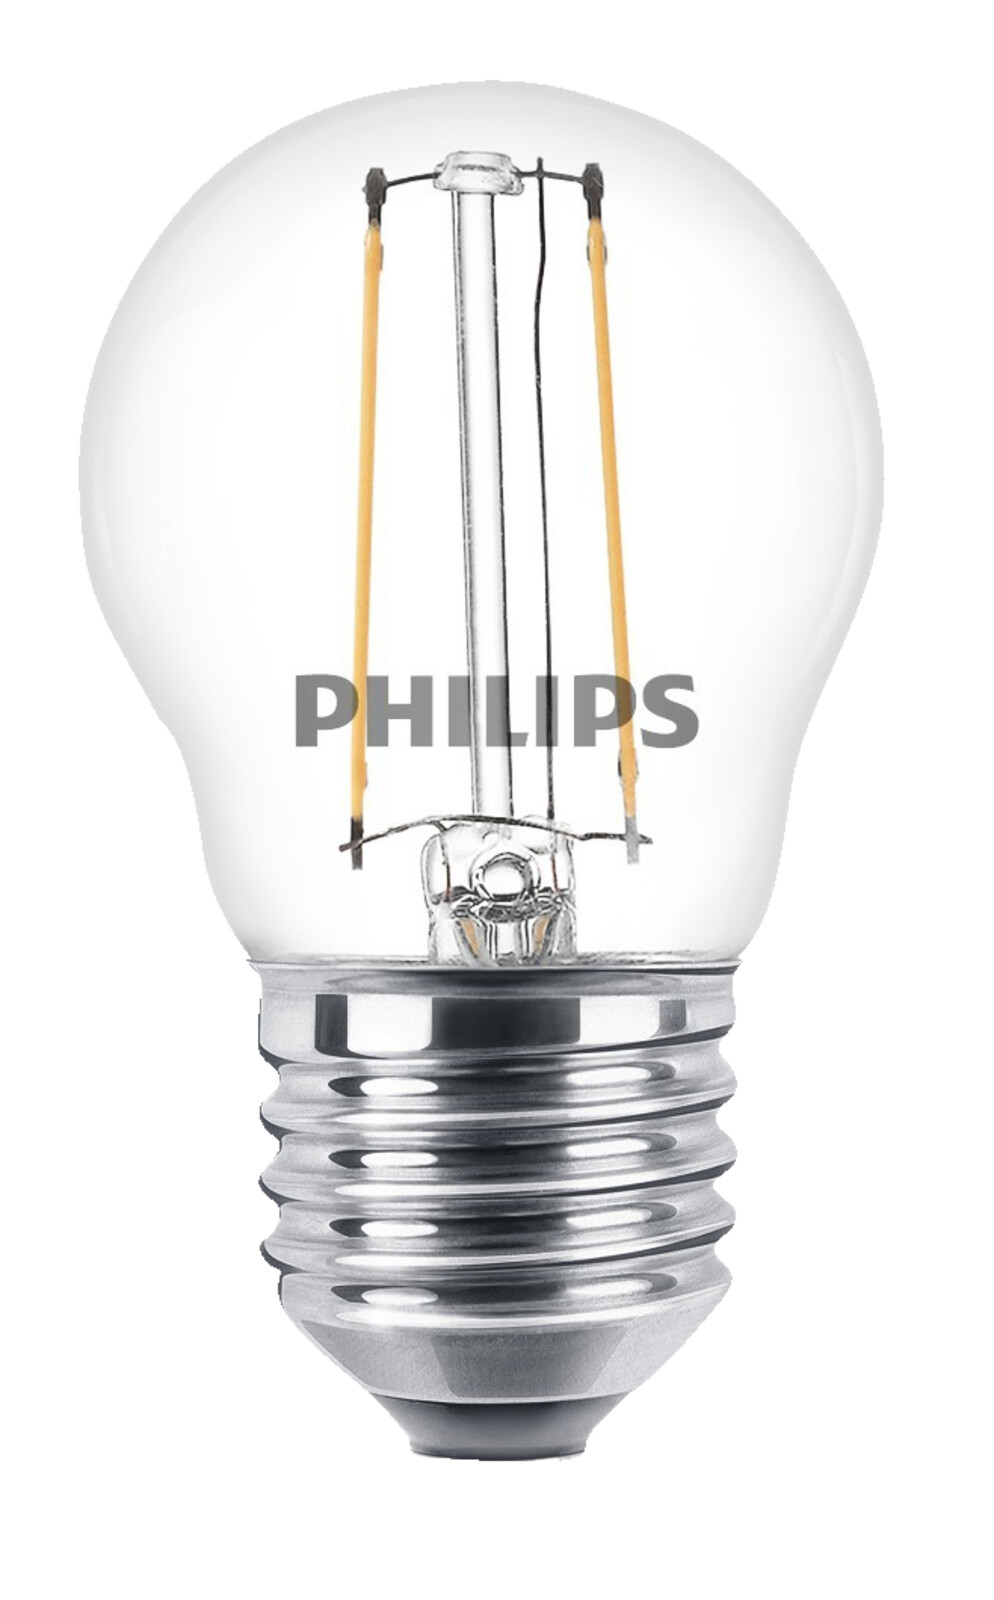 philips 57393800 led leuchtmittel e27 warmwei 2 watt 250 lumen ebay. Black Bedroom Furniture Sets. Home Design Ideas